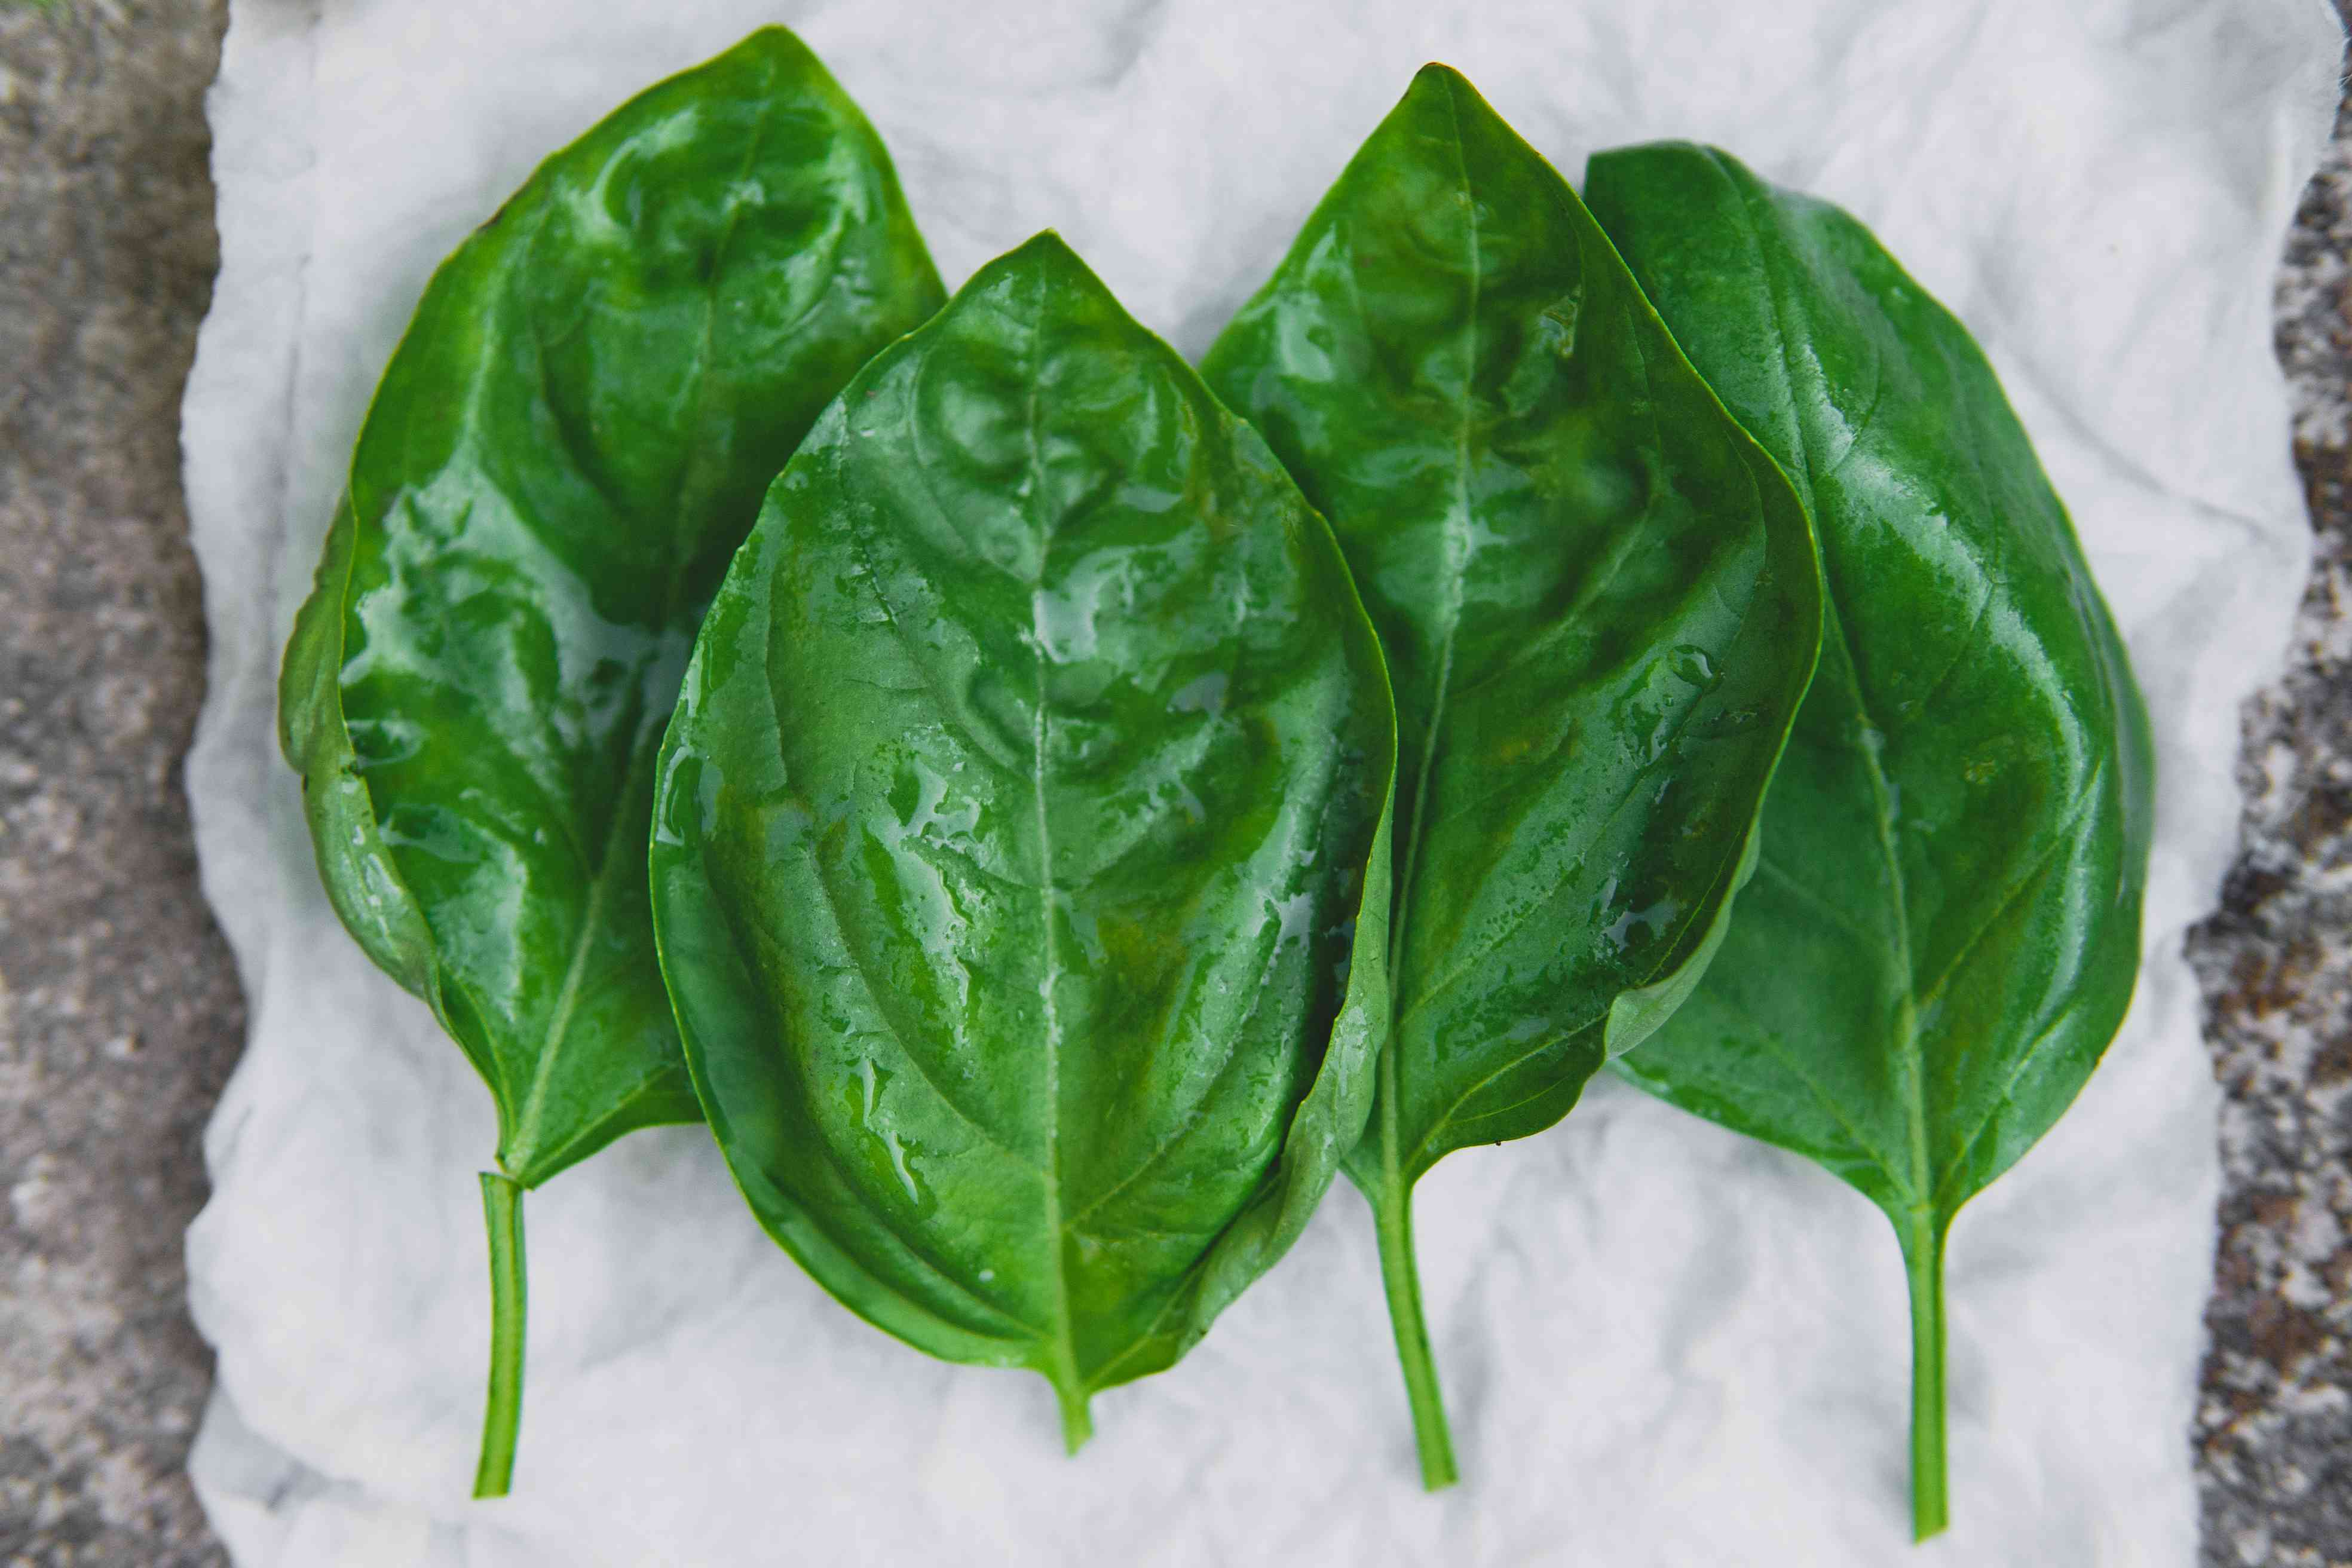 picked basil leaves are freshly washed on paper towel